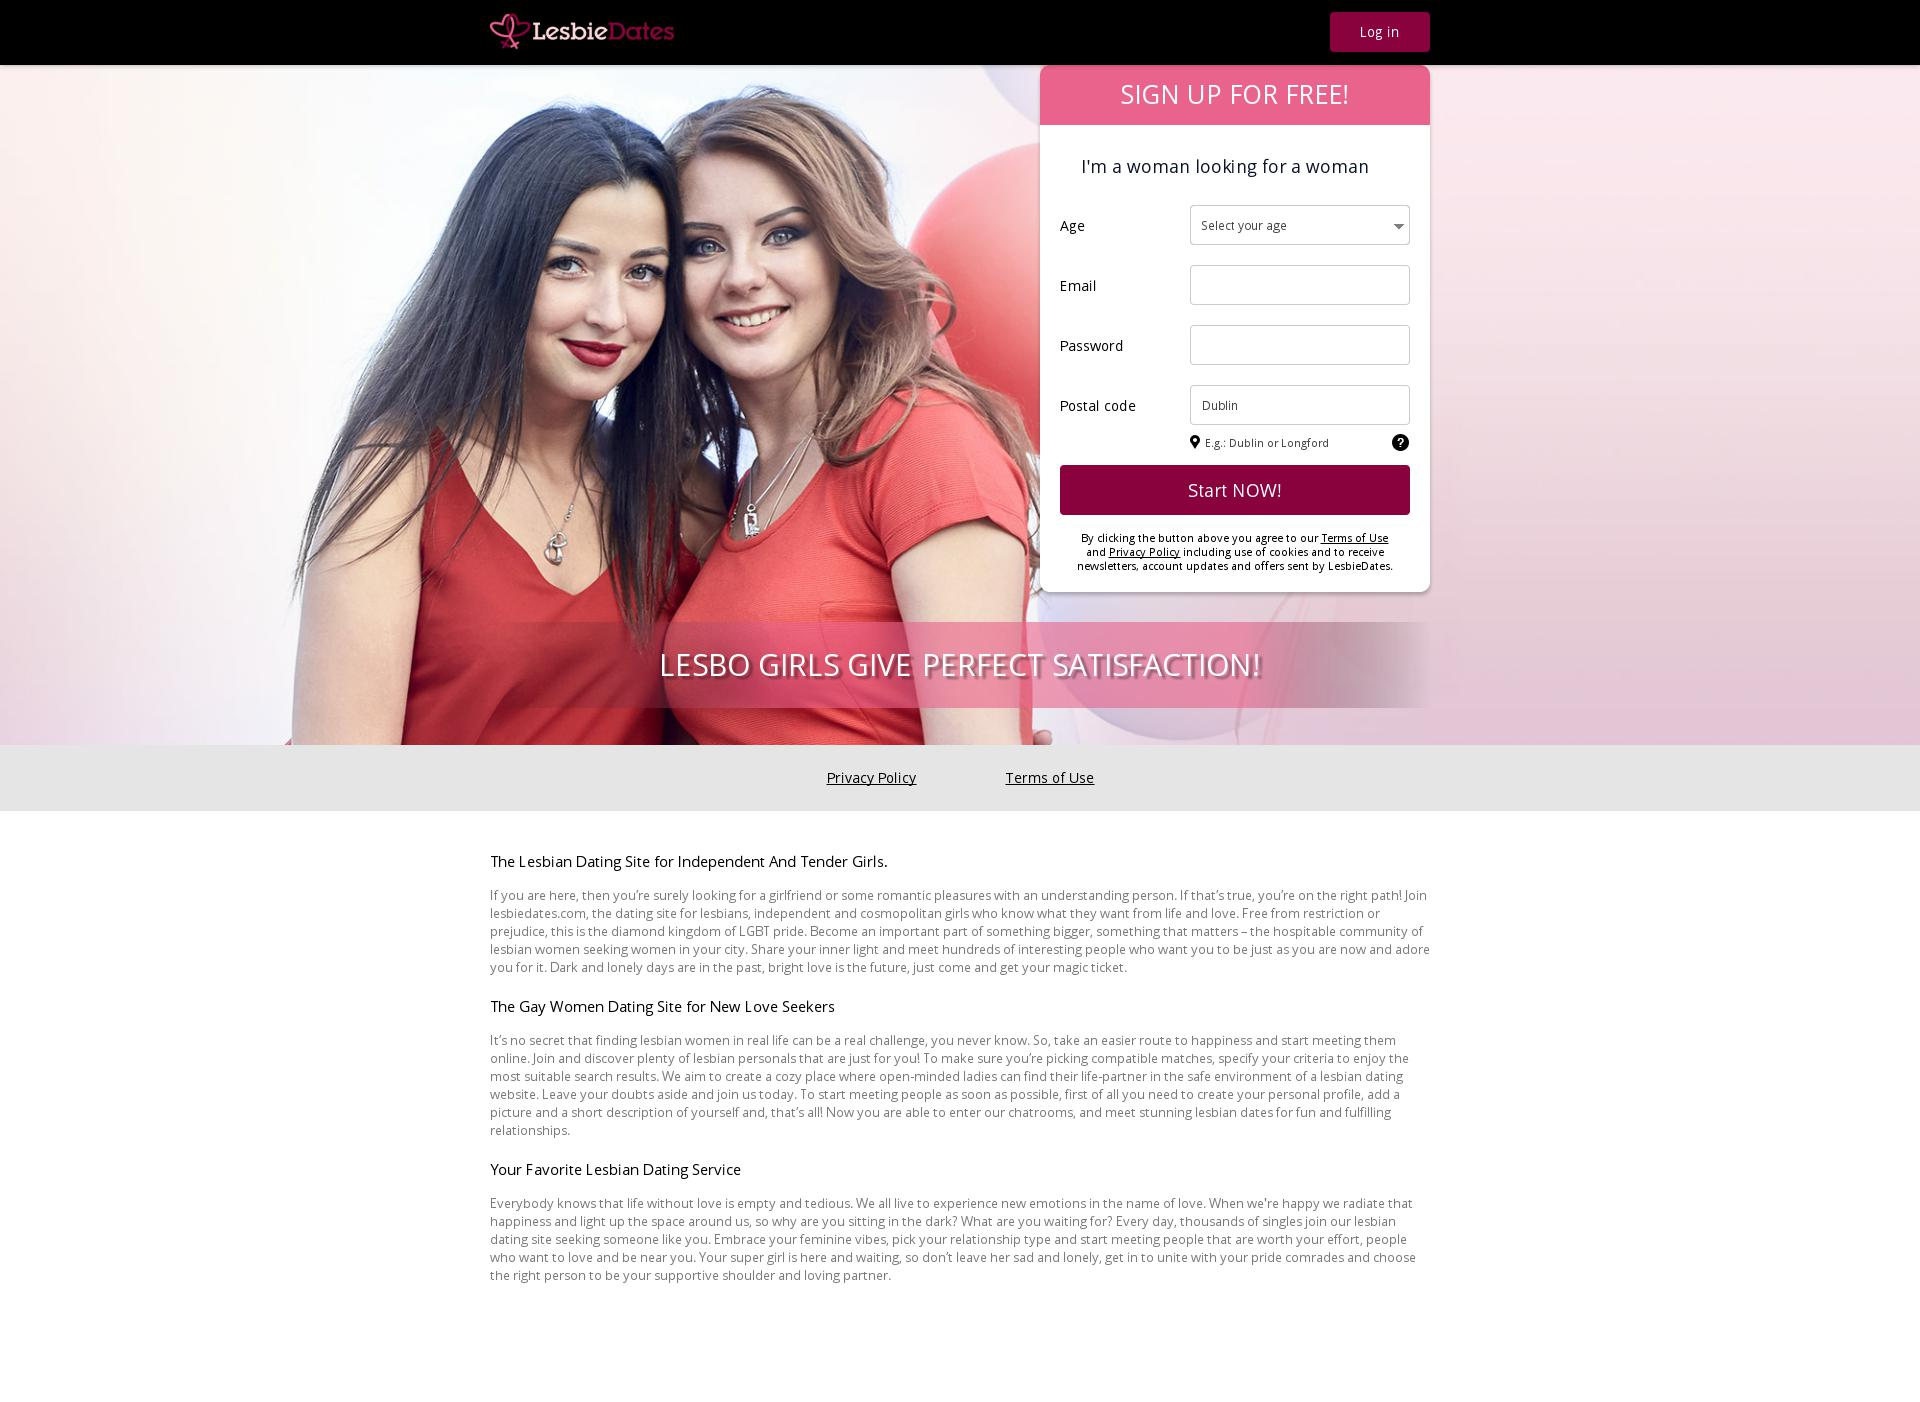 ashland city lesbian dating site Ashland wisconsin singles can easily find a date, true love, friends for life or just for fun ashland wisconsin is full of single men and women who are looking for a date register for free to find the person whose interests match yours.